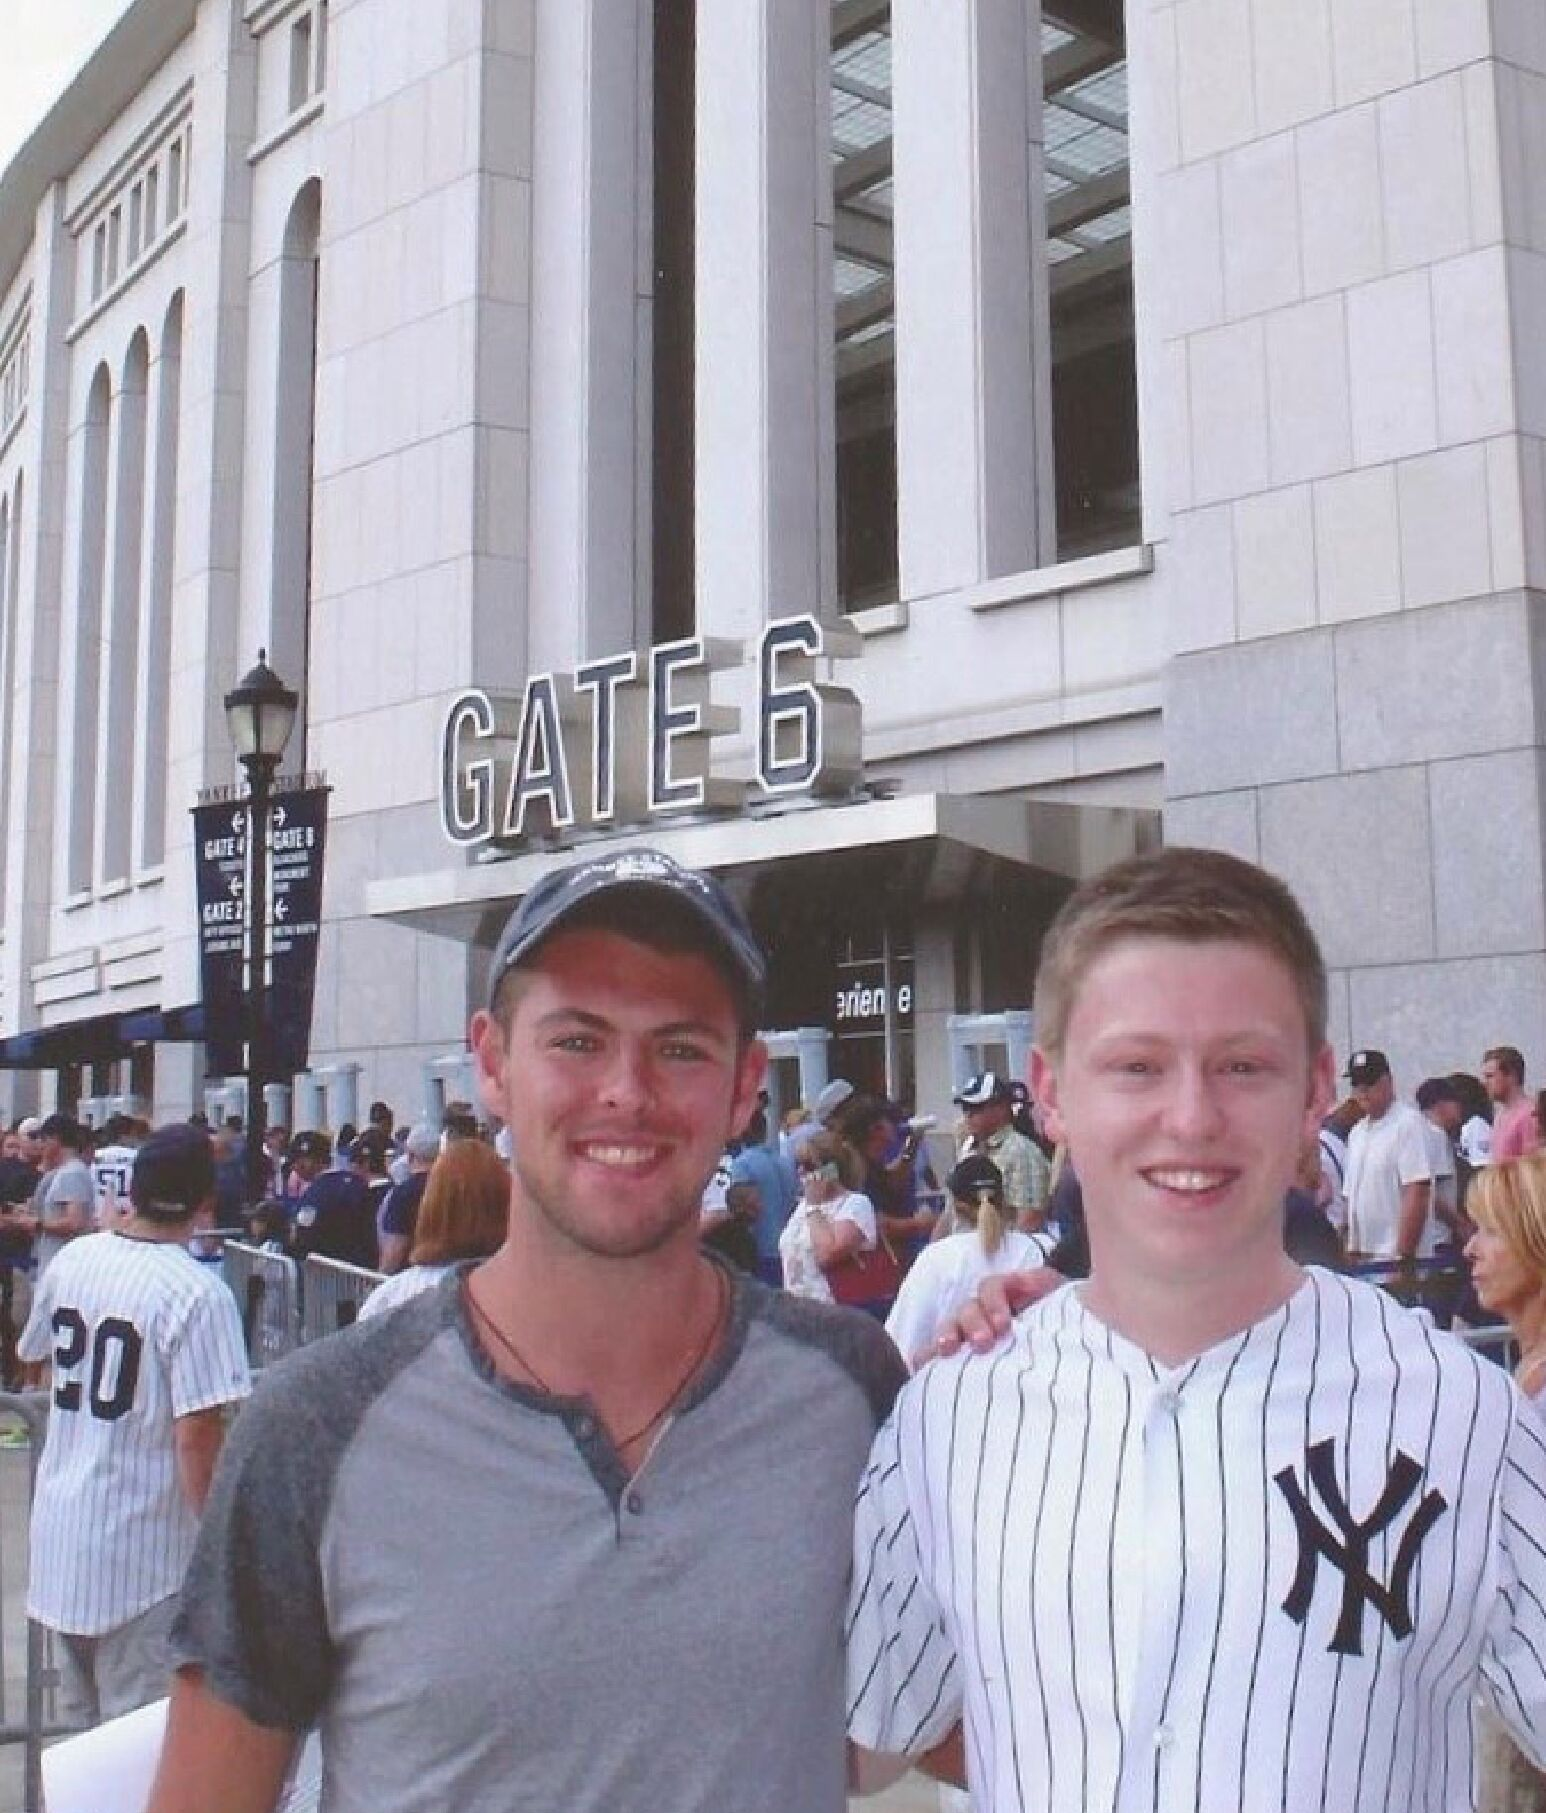 Noah and his friend, Ryan, standing outside Yankee stadium.